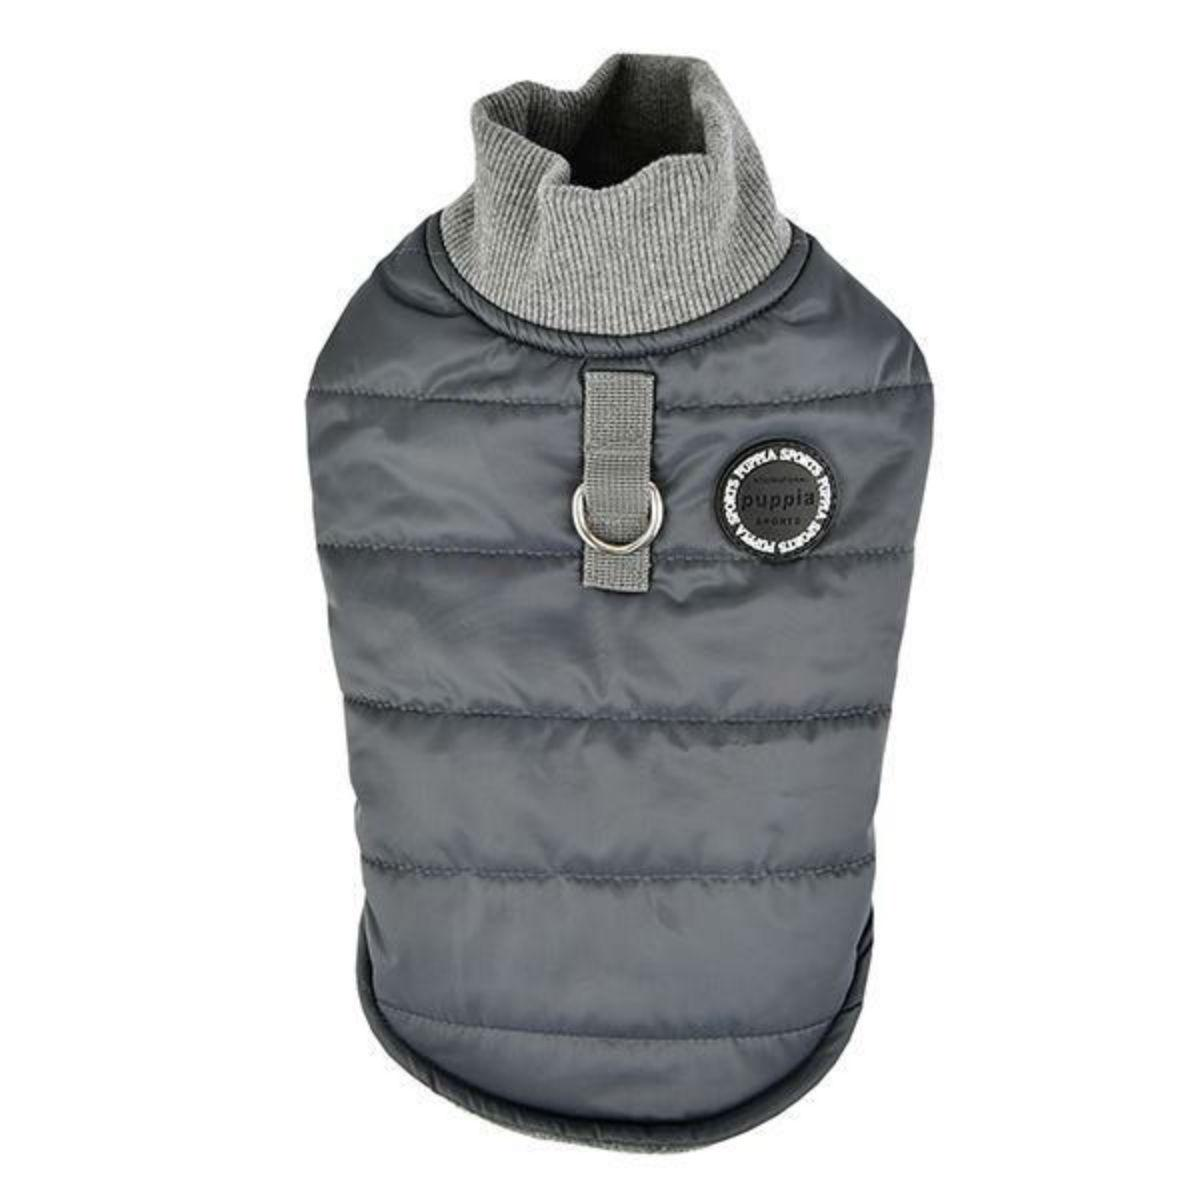 Wagner Quilted Dog Coat by Puppia - Grey